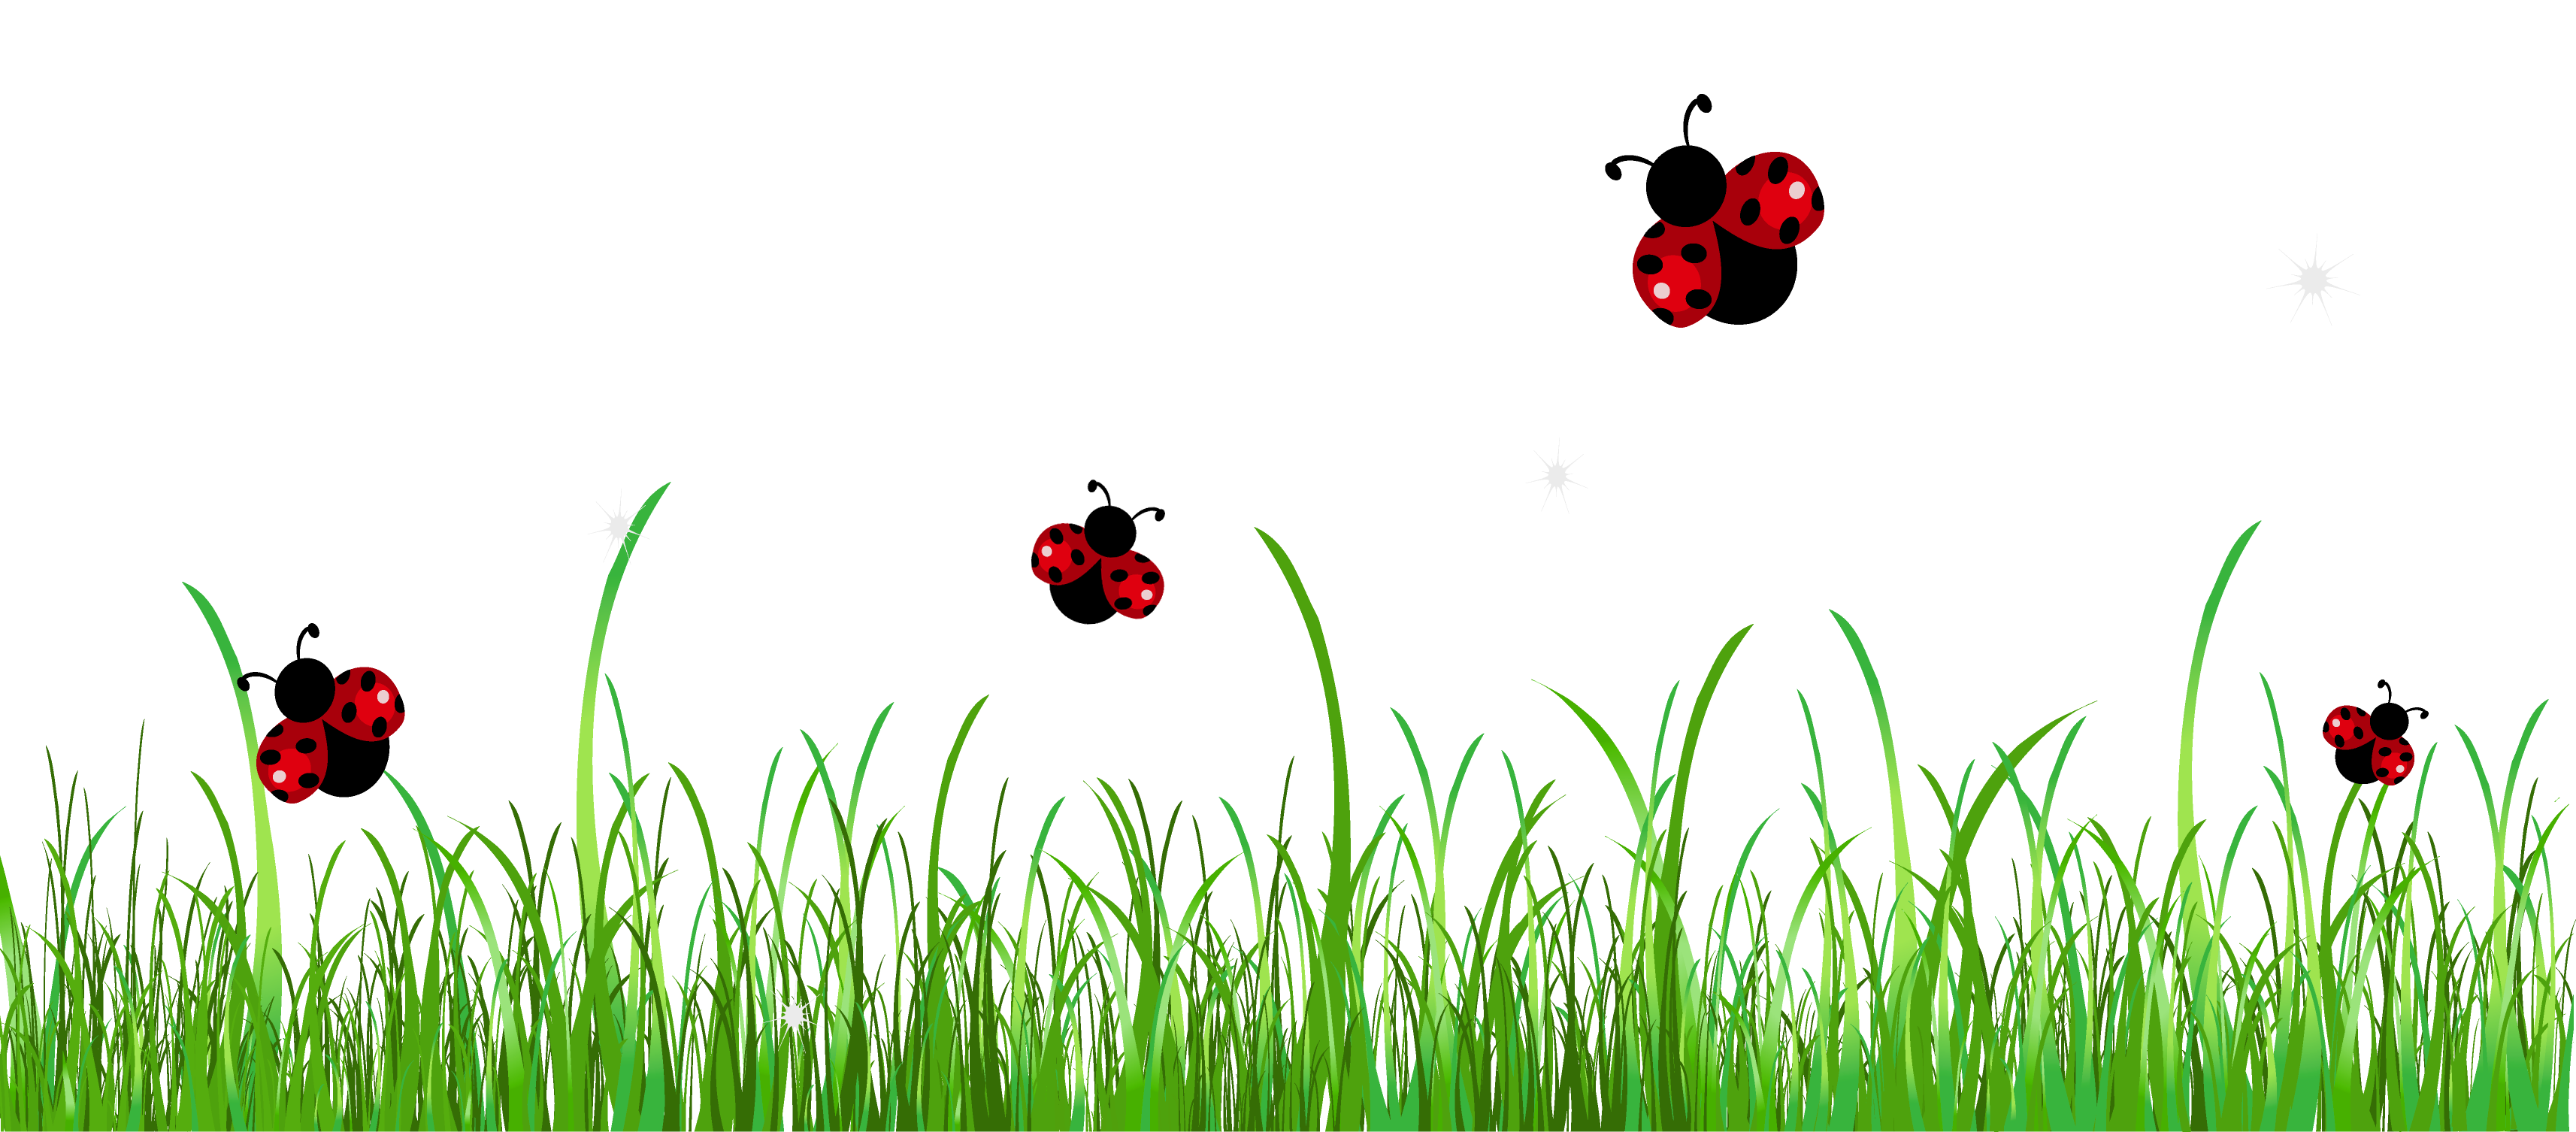 jpg freeuse download Grass with Ladybugs PNG Clipart Picture